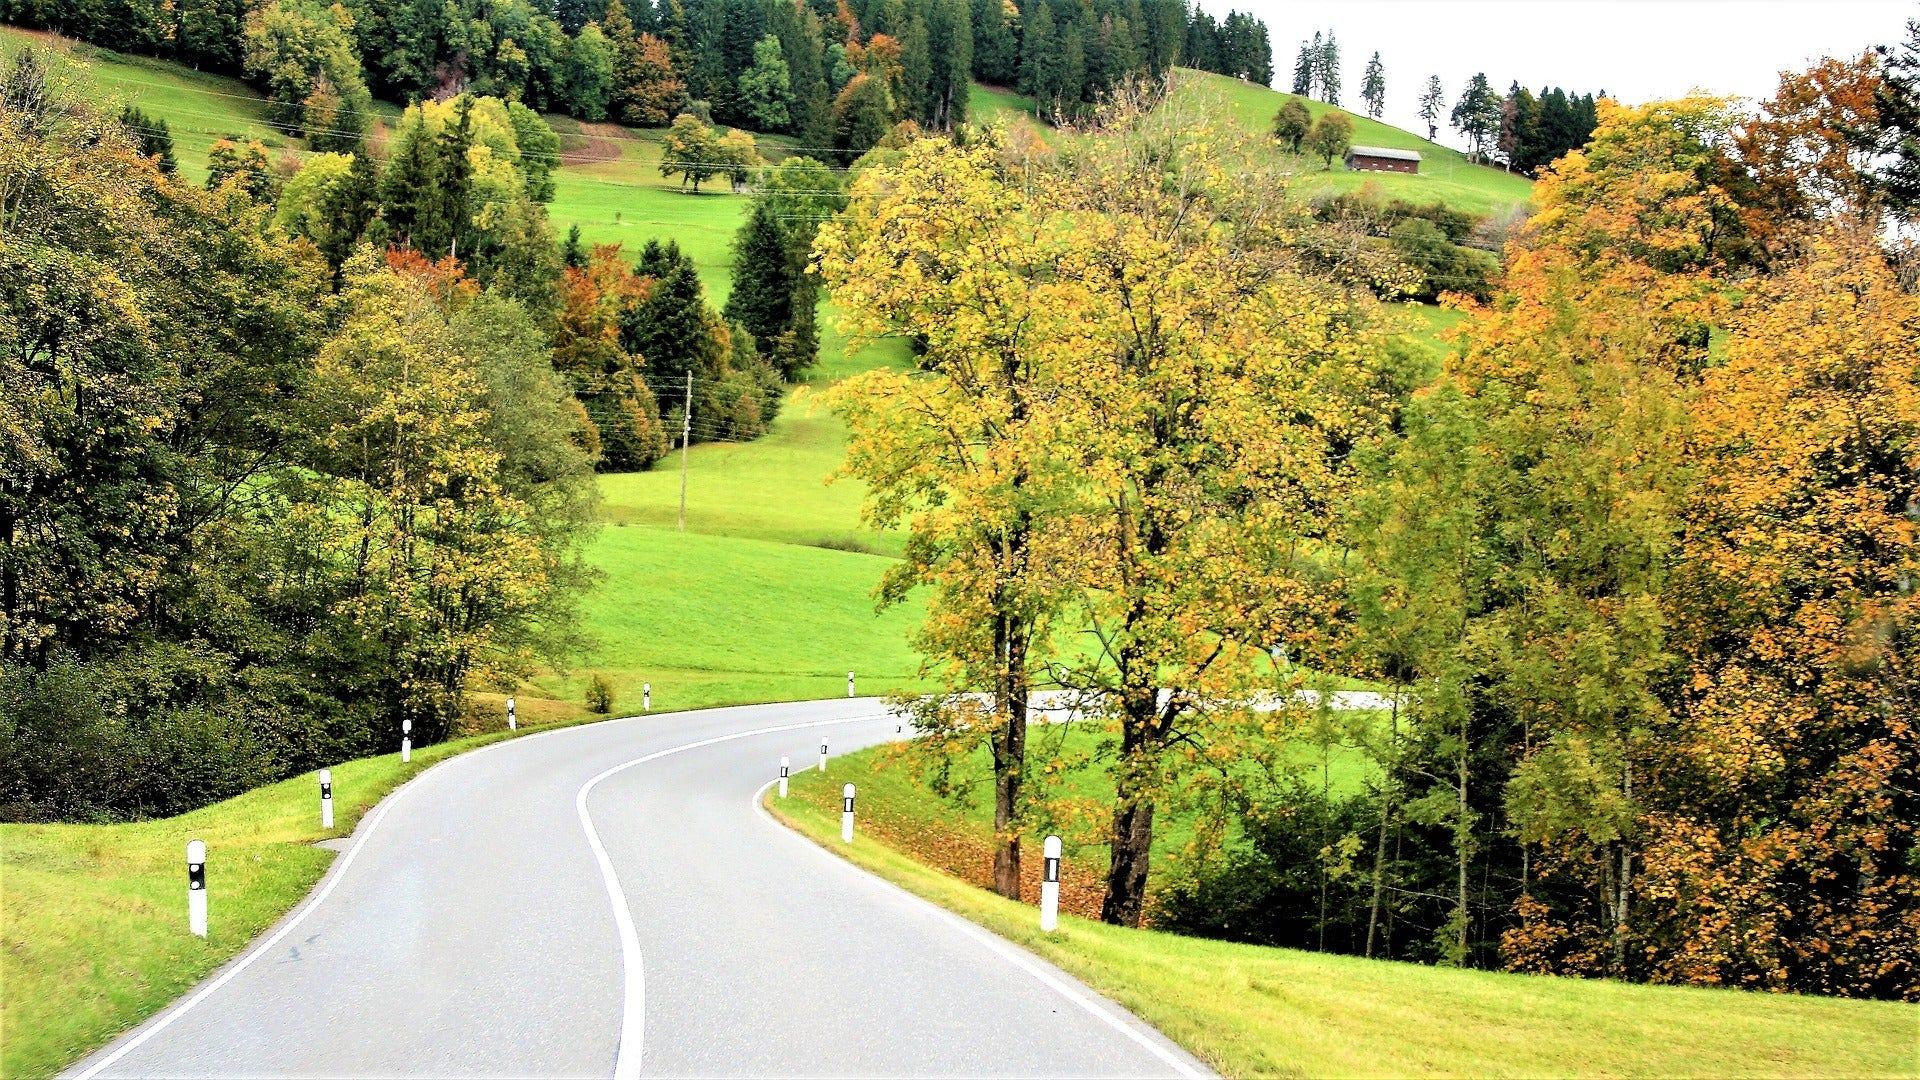 Road with greenery